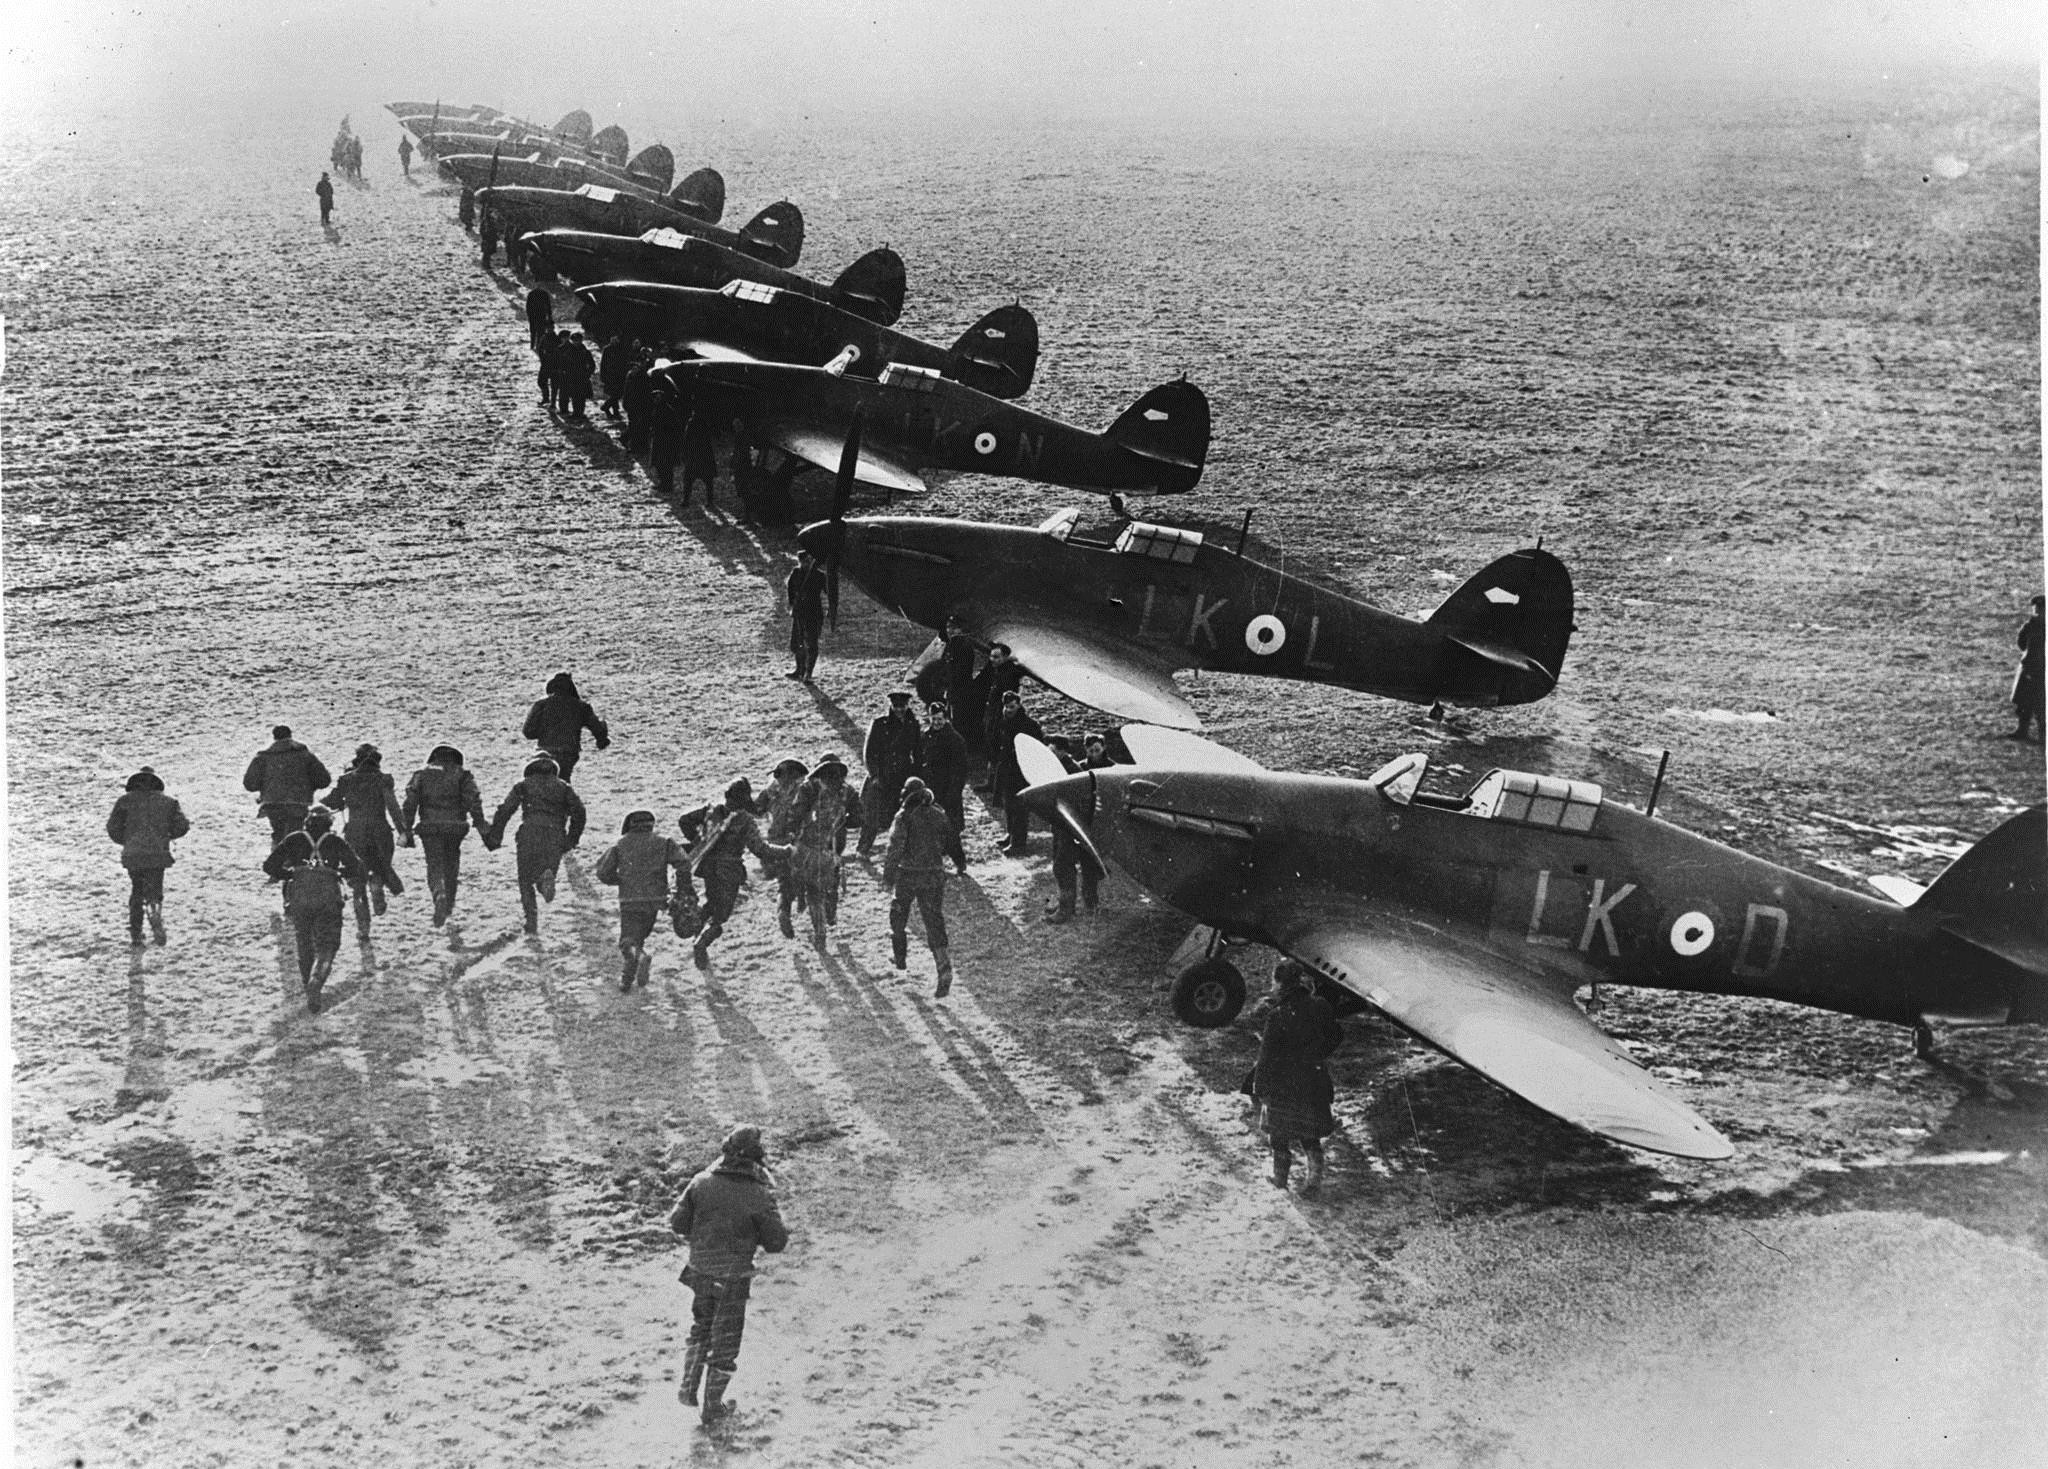 Pilots scramble for their Hawker Hurricane fighters at an airfield in England to tackle the Luftwaffe during the Battle of Britain. (photo via RCAF)